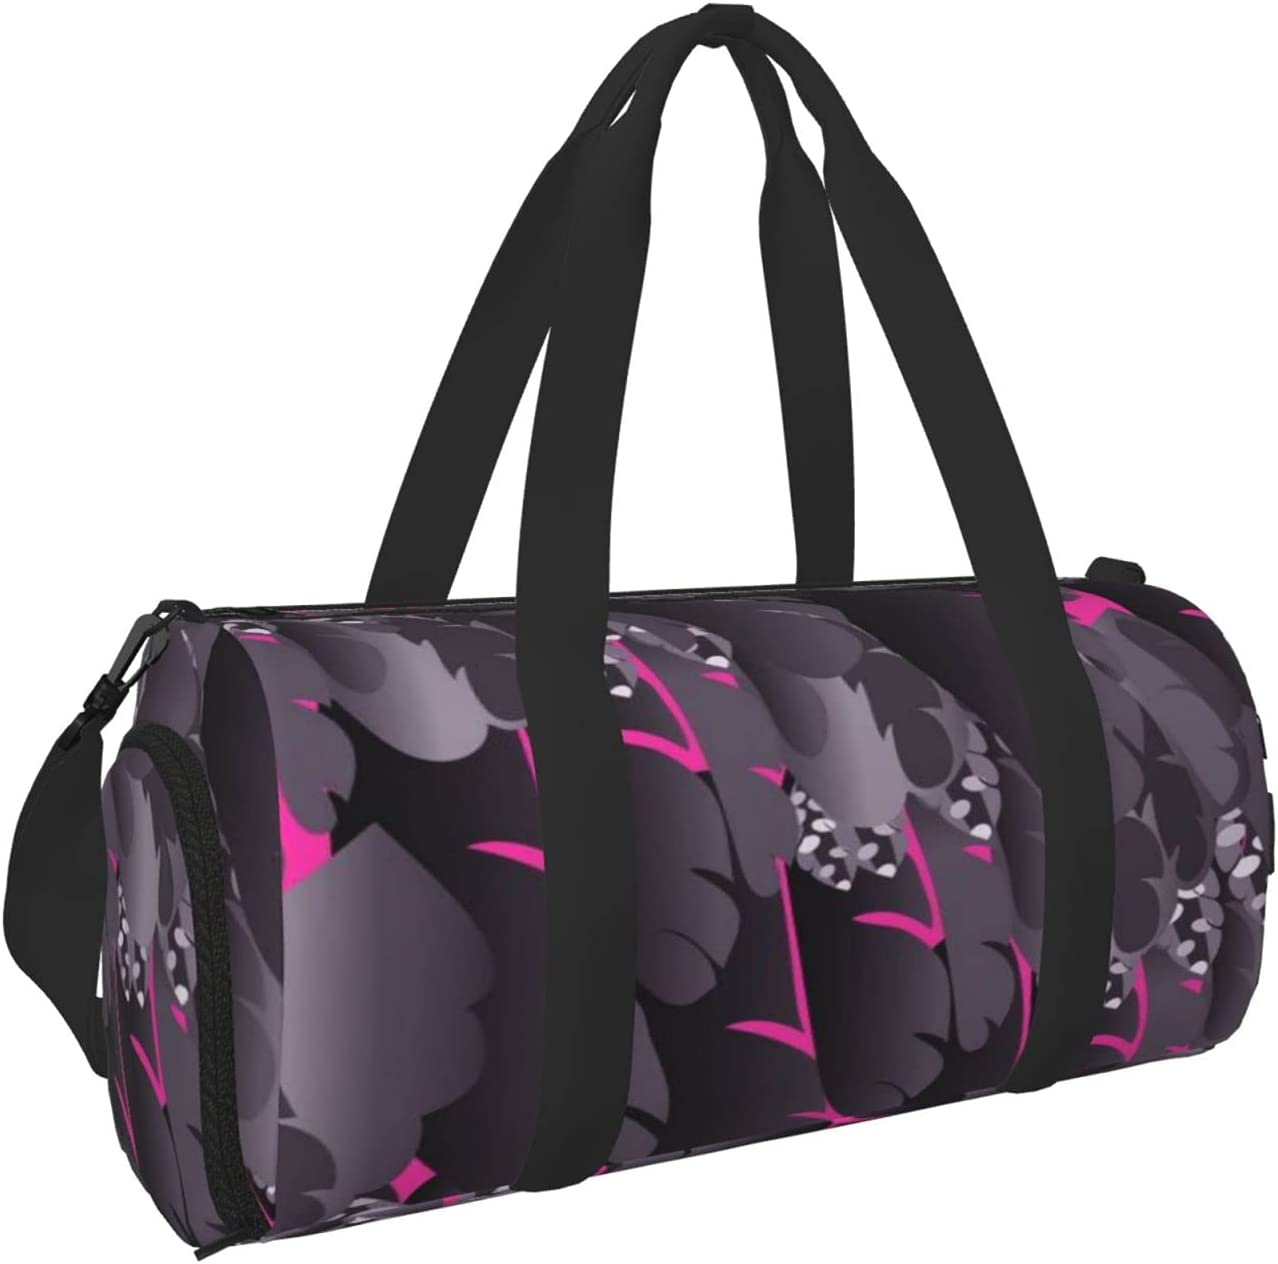 Purple Owl Feather Sports Gym Bag Surprise price Duffel Travel Popular Wet with Dry